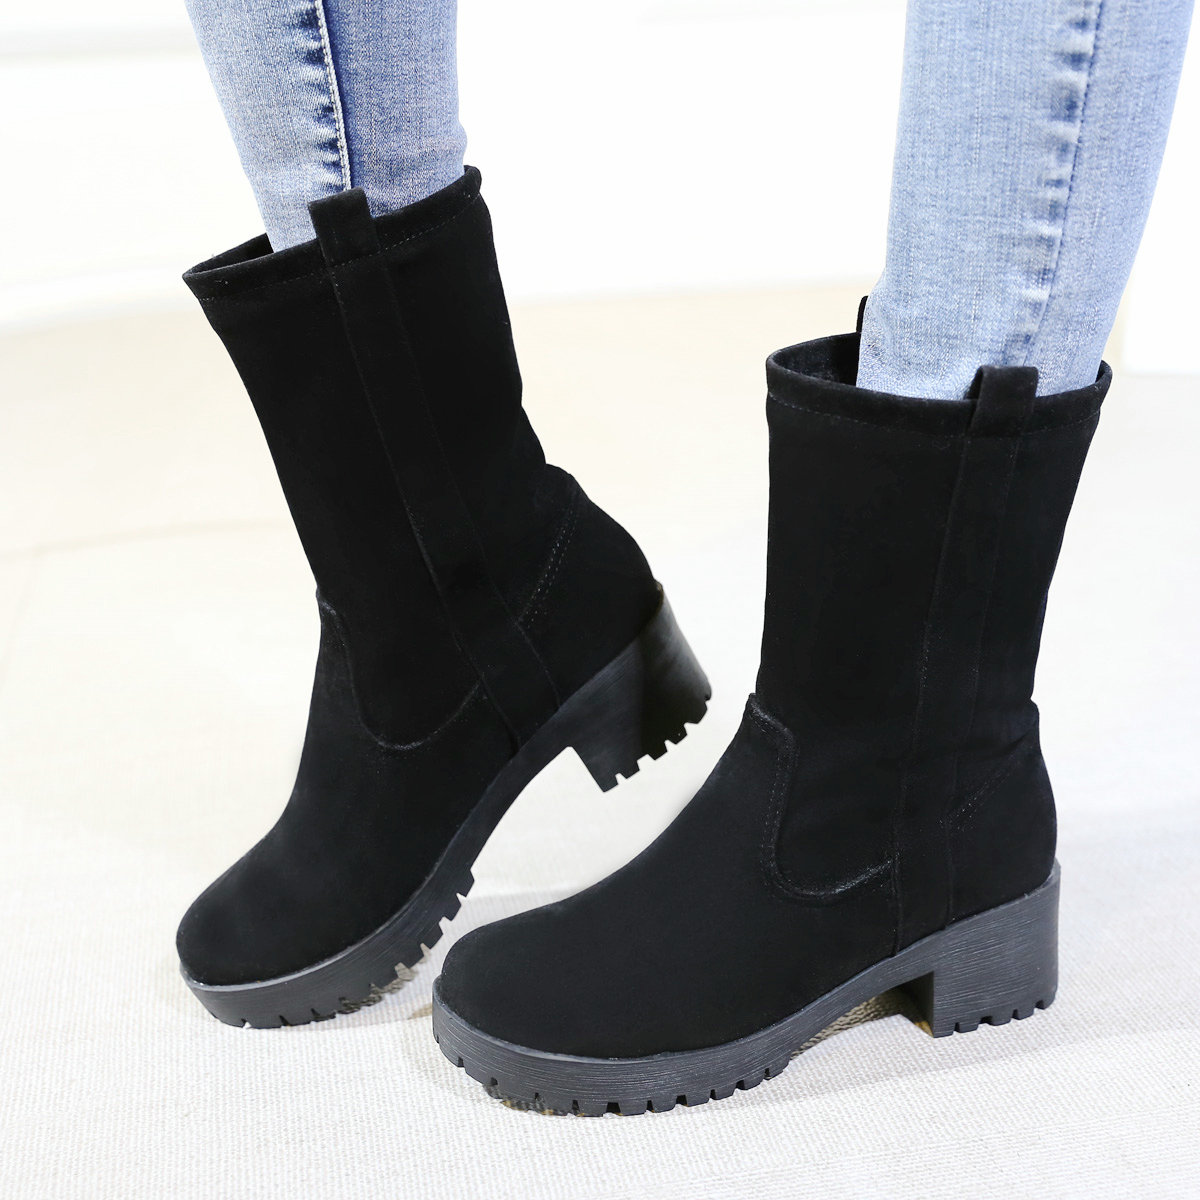 Female Flock Leather Mid Calf Boots Thick Low Heels Platform Slip On Round Toe Winter Fashion Ladies Shoes Green Red Black стоимость